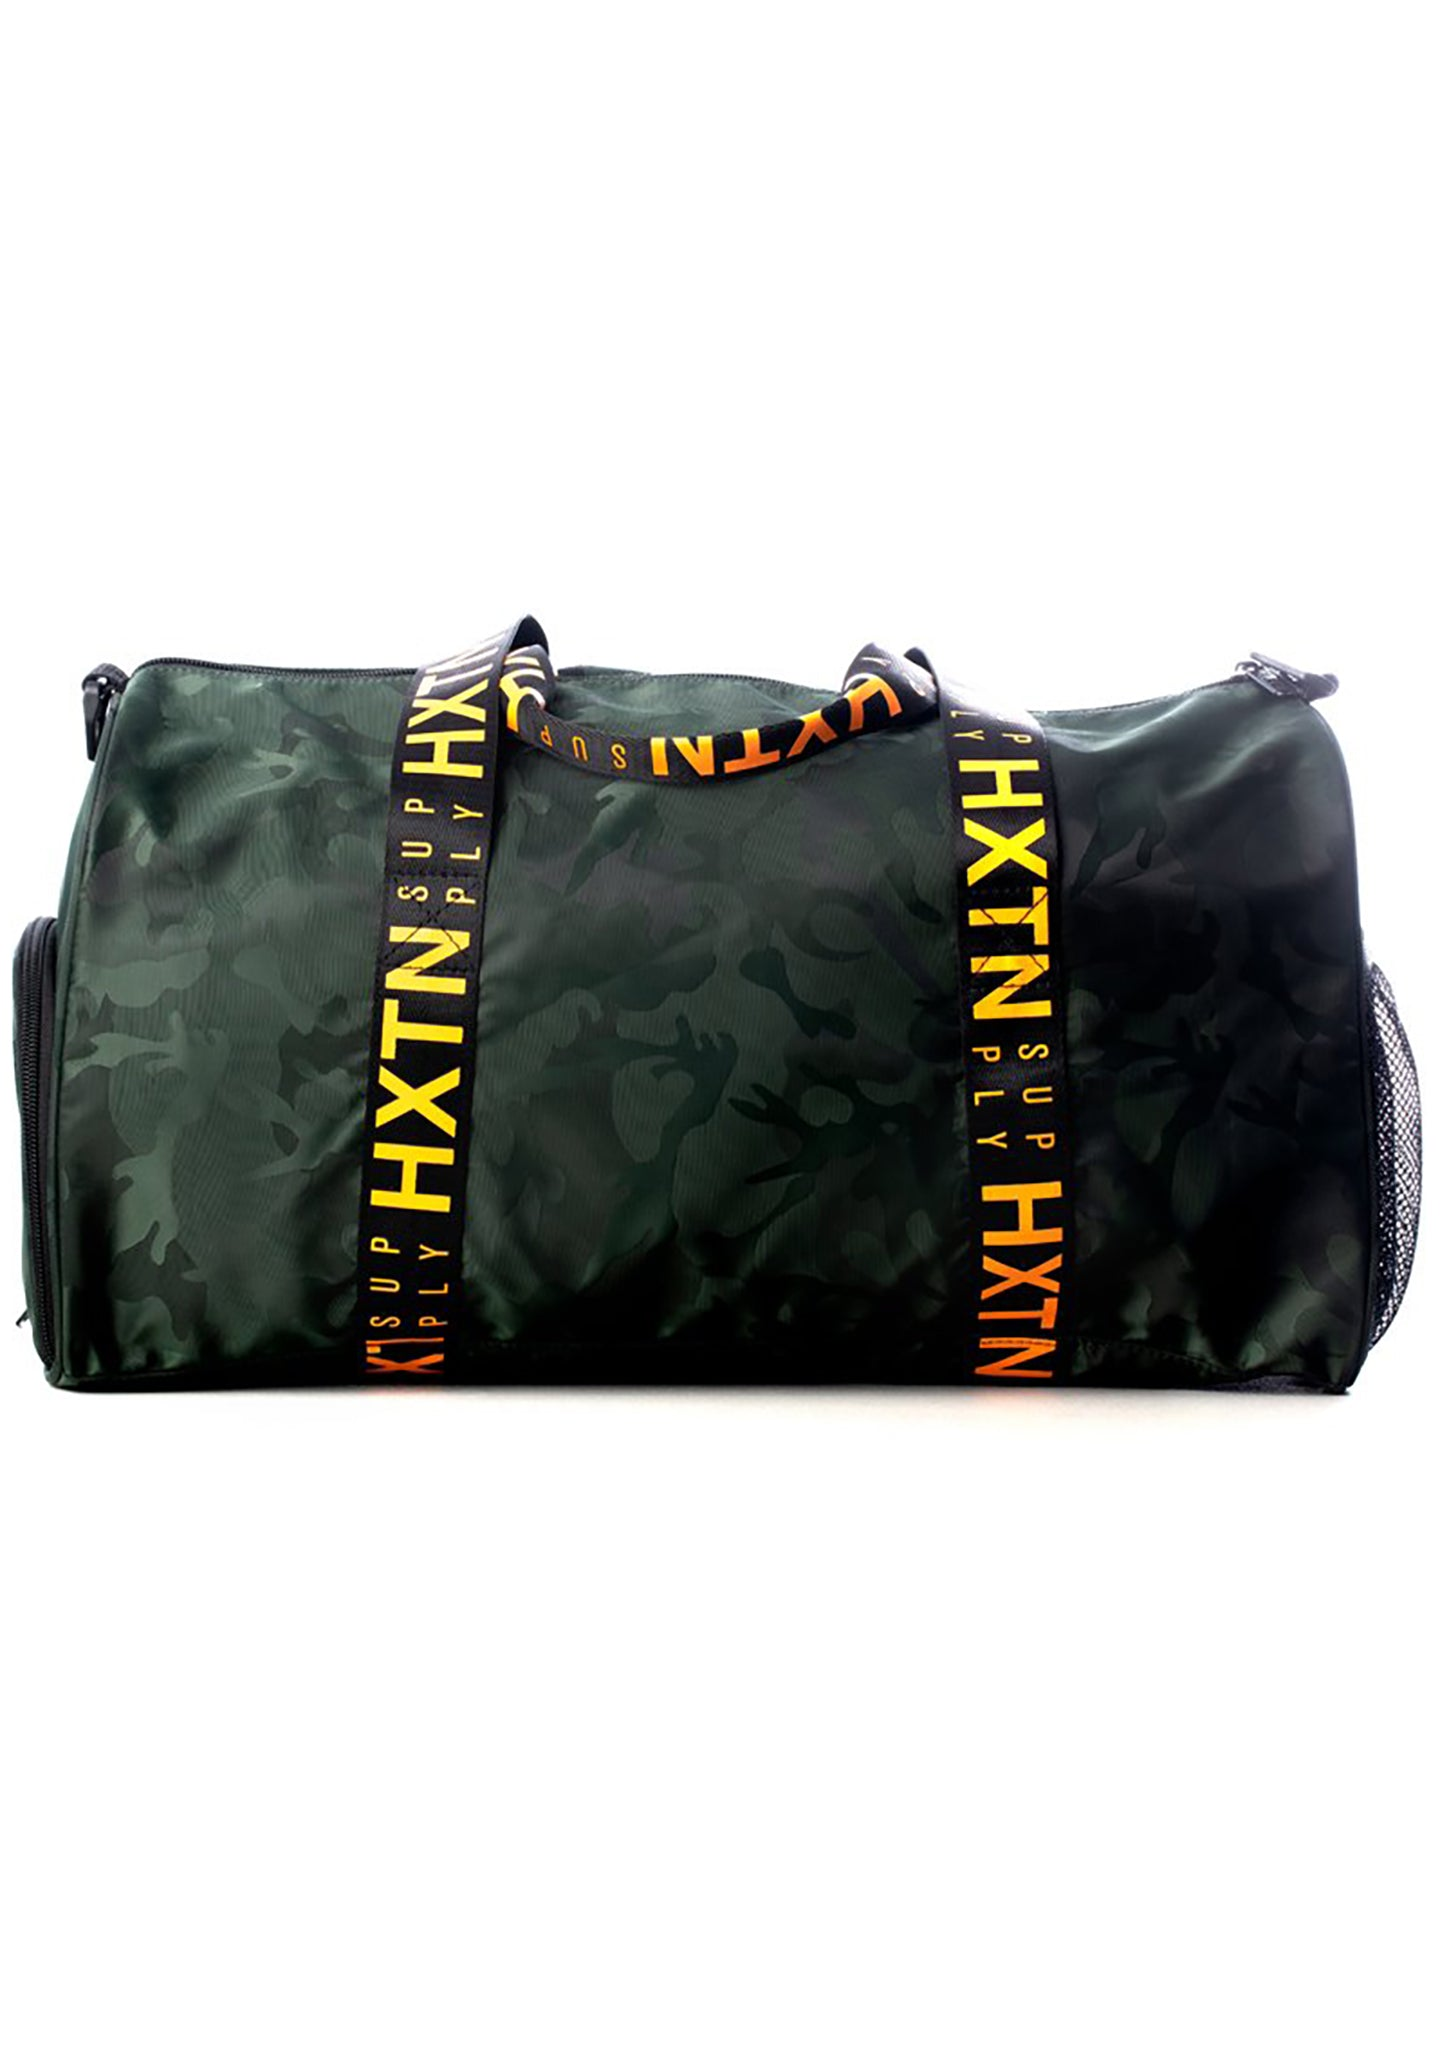 Prime Duffle Bag in Camo Army Green